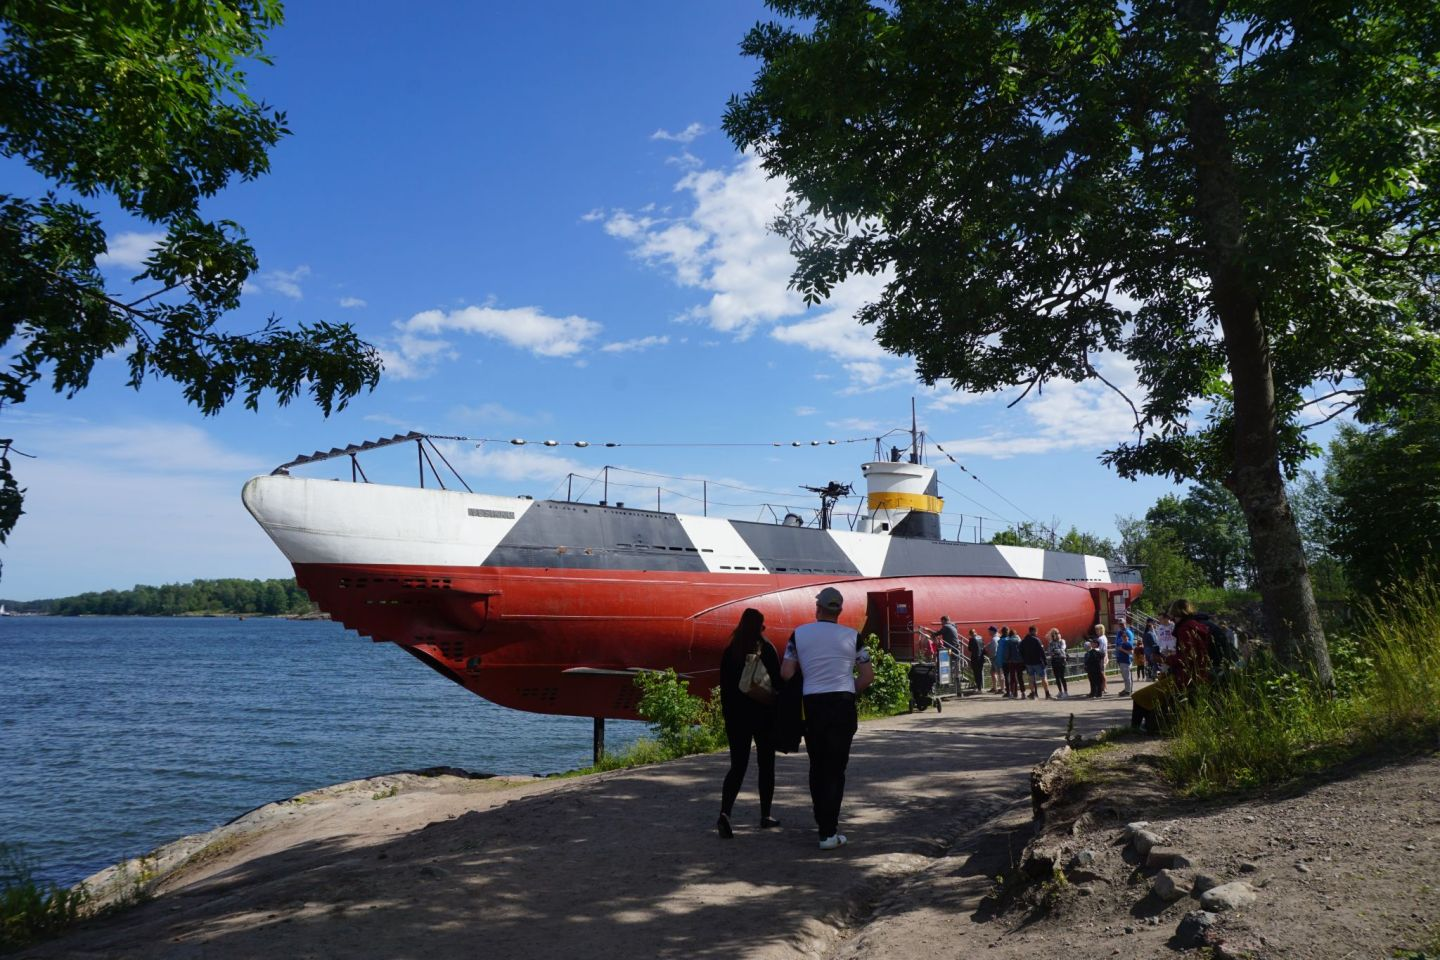 Submarine Vesikko is one of the most popular sights on the island of Suomenlinna